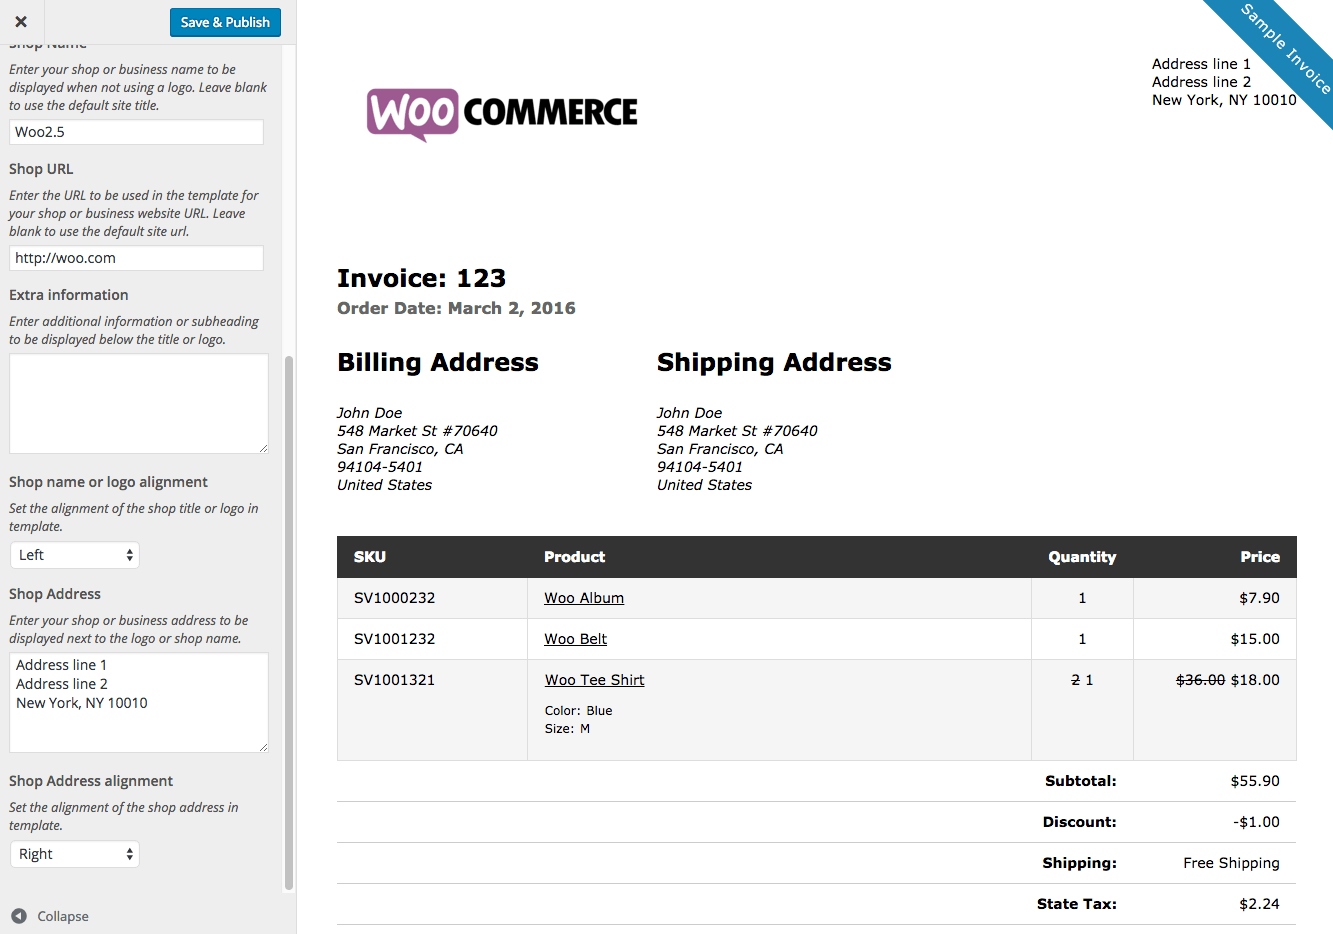 Totallocalus  Remarkable Woocommerce Print Invoices Amp Packing Lists  Woocommerce Docs With Licious Woocommerce Print Invoices  Packing Lists Customizer With Divine Excel Invoice Templates Free Also Chevrolet Invoice Price In Addition Best Invoicing Software For Freelancers And Free Service Invoice As Well As Bmw X Invoice Price Additionally Toyota Dealer Invoice From Docswoocommercecom With Totallocalus  Licious Woocommerce Print Invoices Amp Packing Lists  Woocommerce Docs With Divine Woocommerce Print Invoices  Packing Lists Customizer And Remarkable Excel Invoice Templates Free Also Chevrolet Invoice Price In Addition Best Invoicing Software For Freelancers From Docswoocommercecom